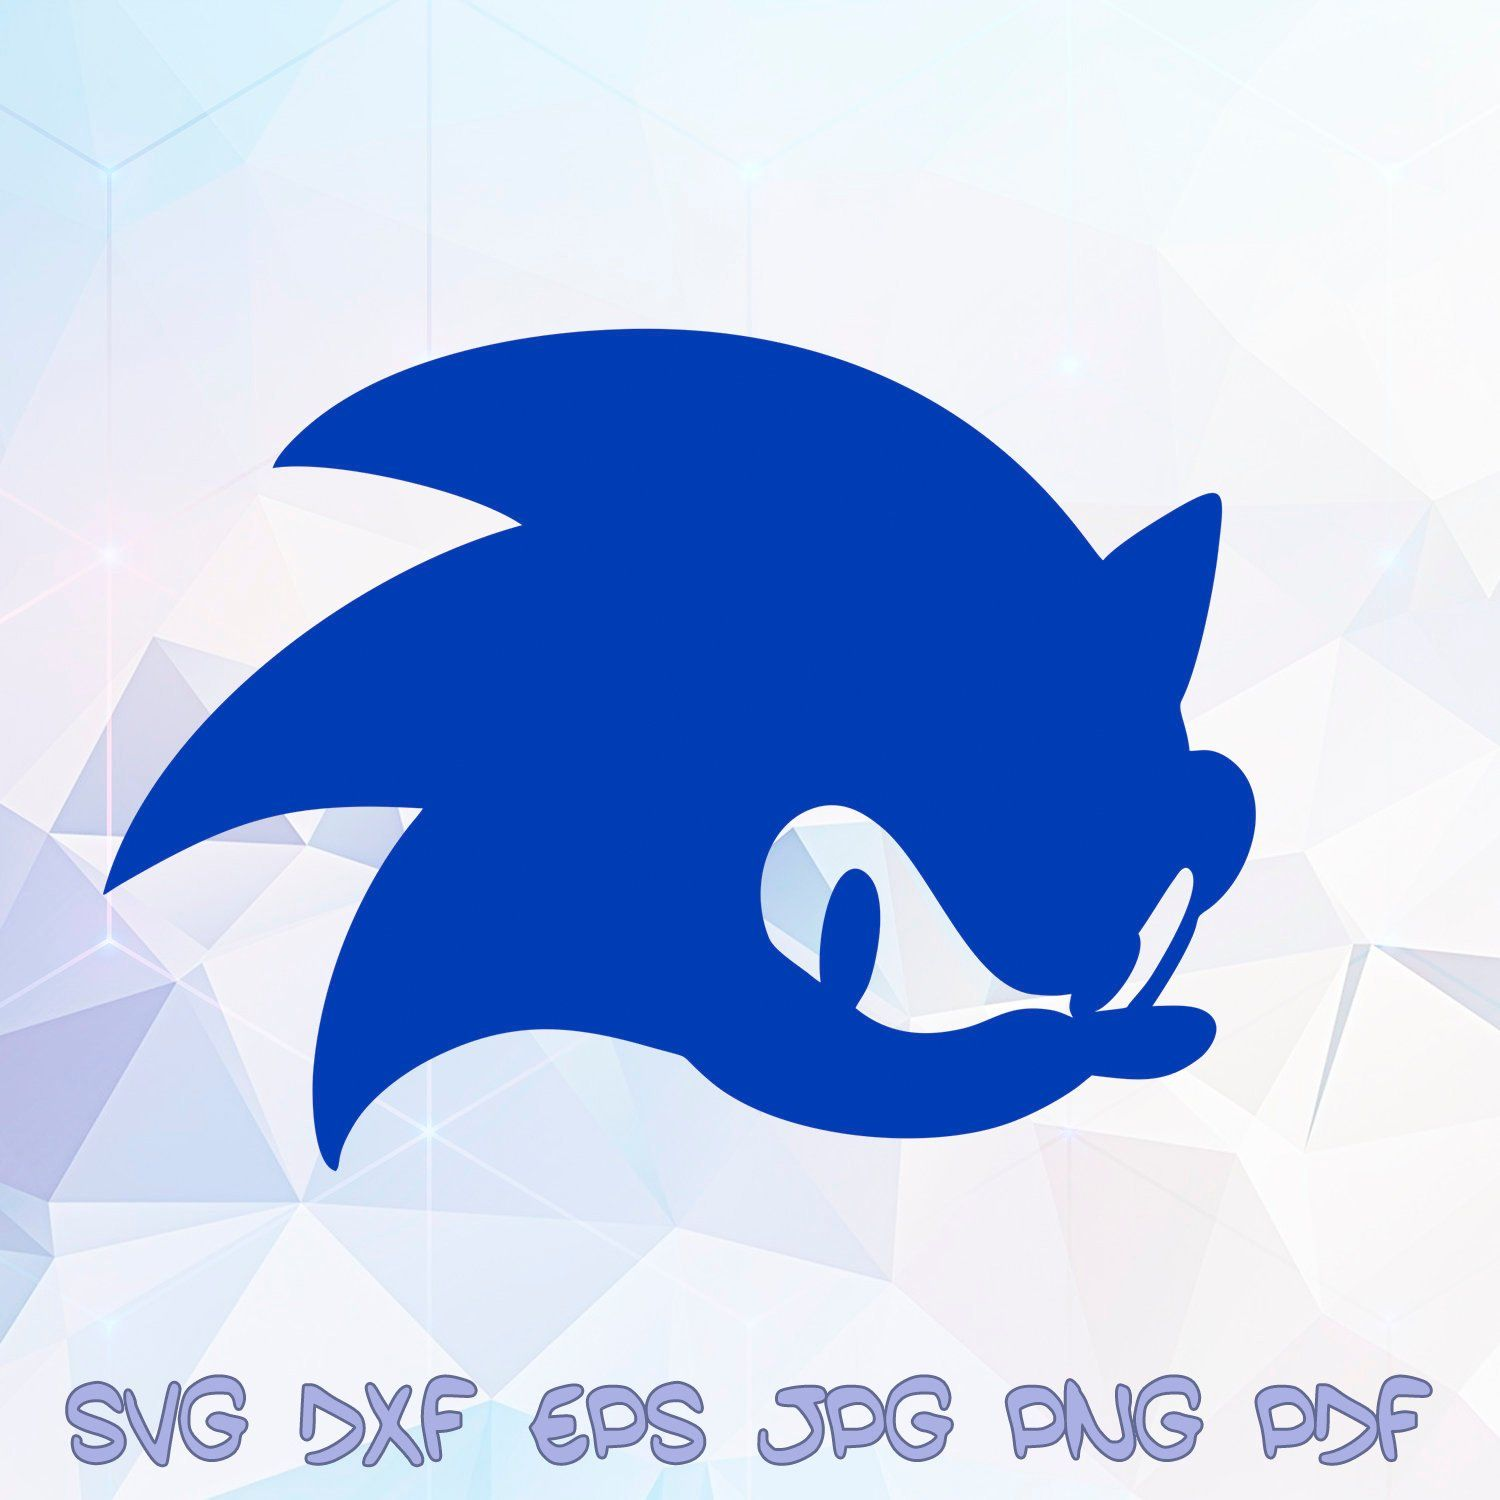 Sonic Head The Hedgehog Svg Silhouette Cricut Birthday Party Stencil Dxf Paper Crafts Vector Tshirt Clipart Bday Supplies Iron On Transfe Disenos De Unas Fondos